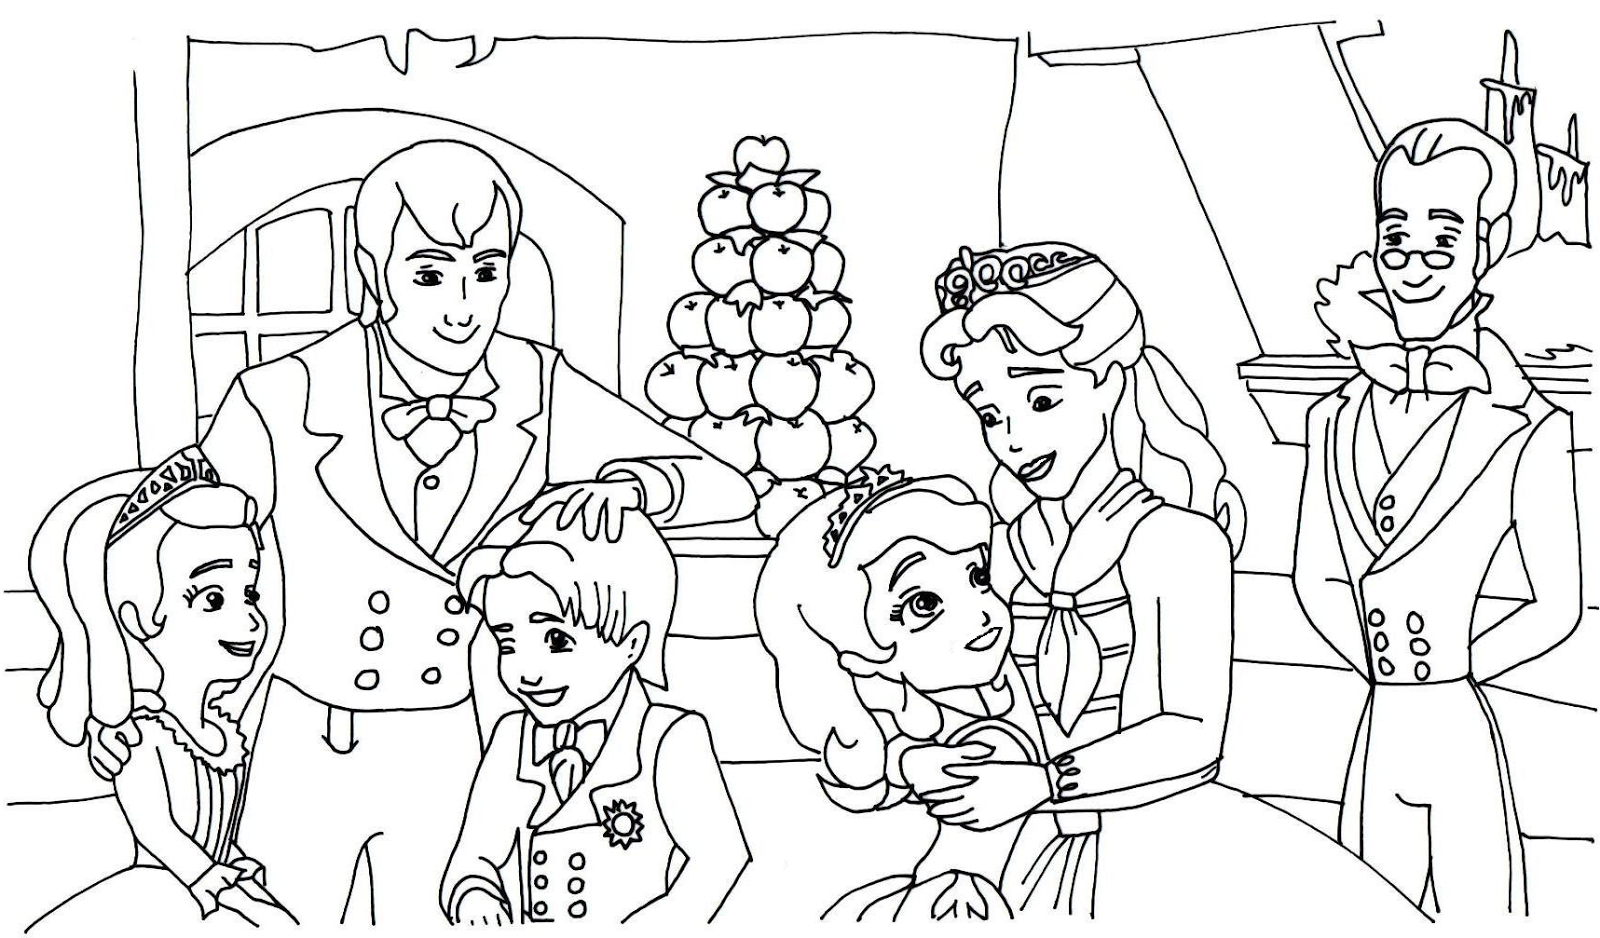 Sofia the first coloring pages free sofia the first for Sofia the princess coloring pages